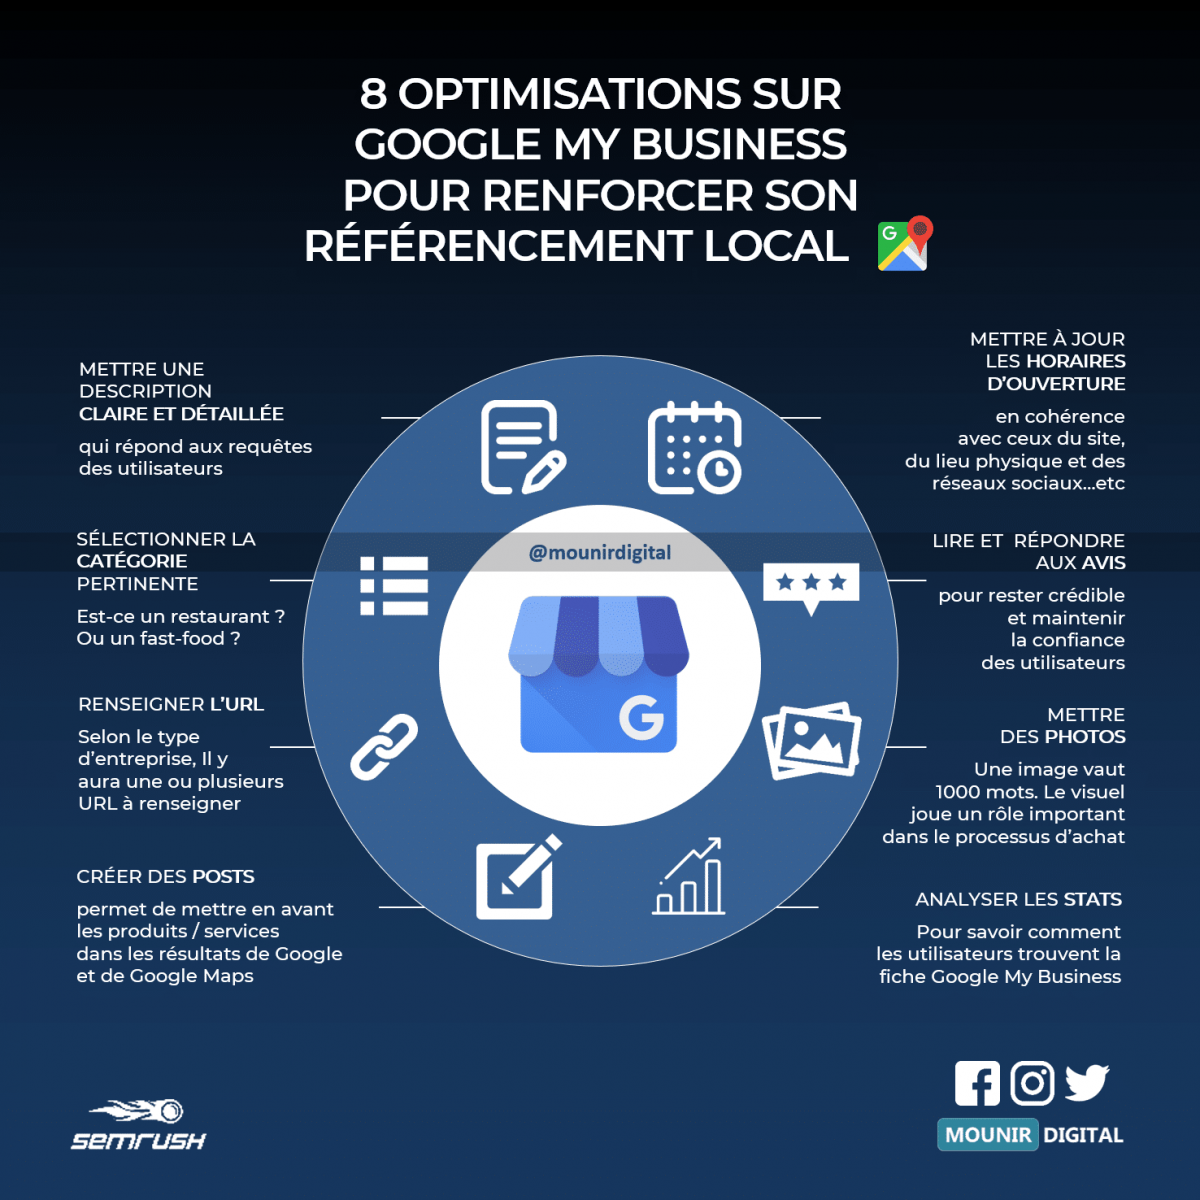 optimisations-google-my-business-mounir-digital